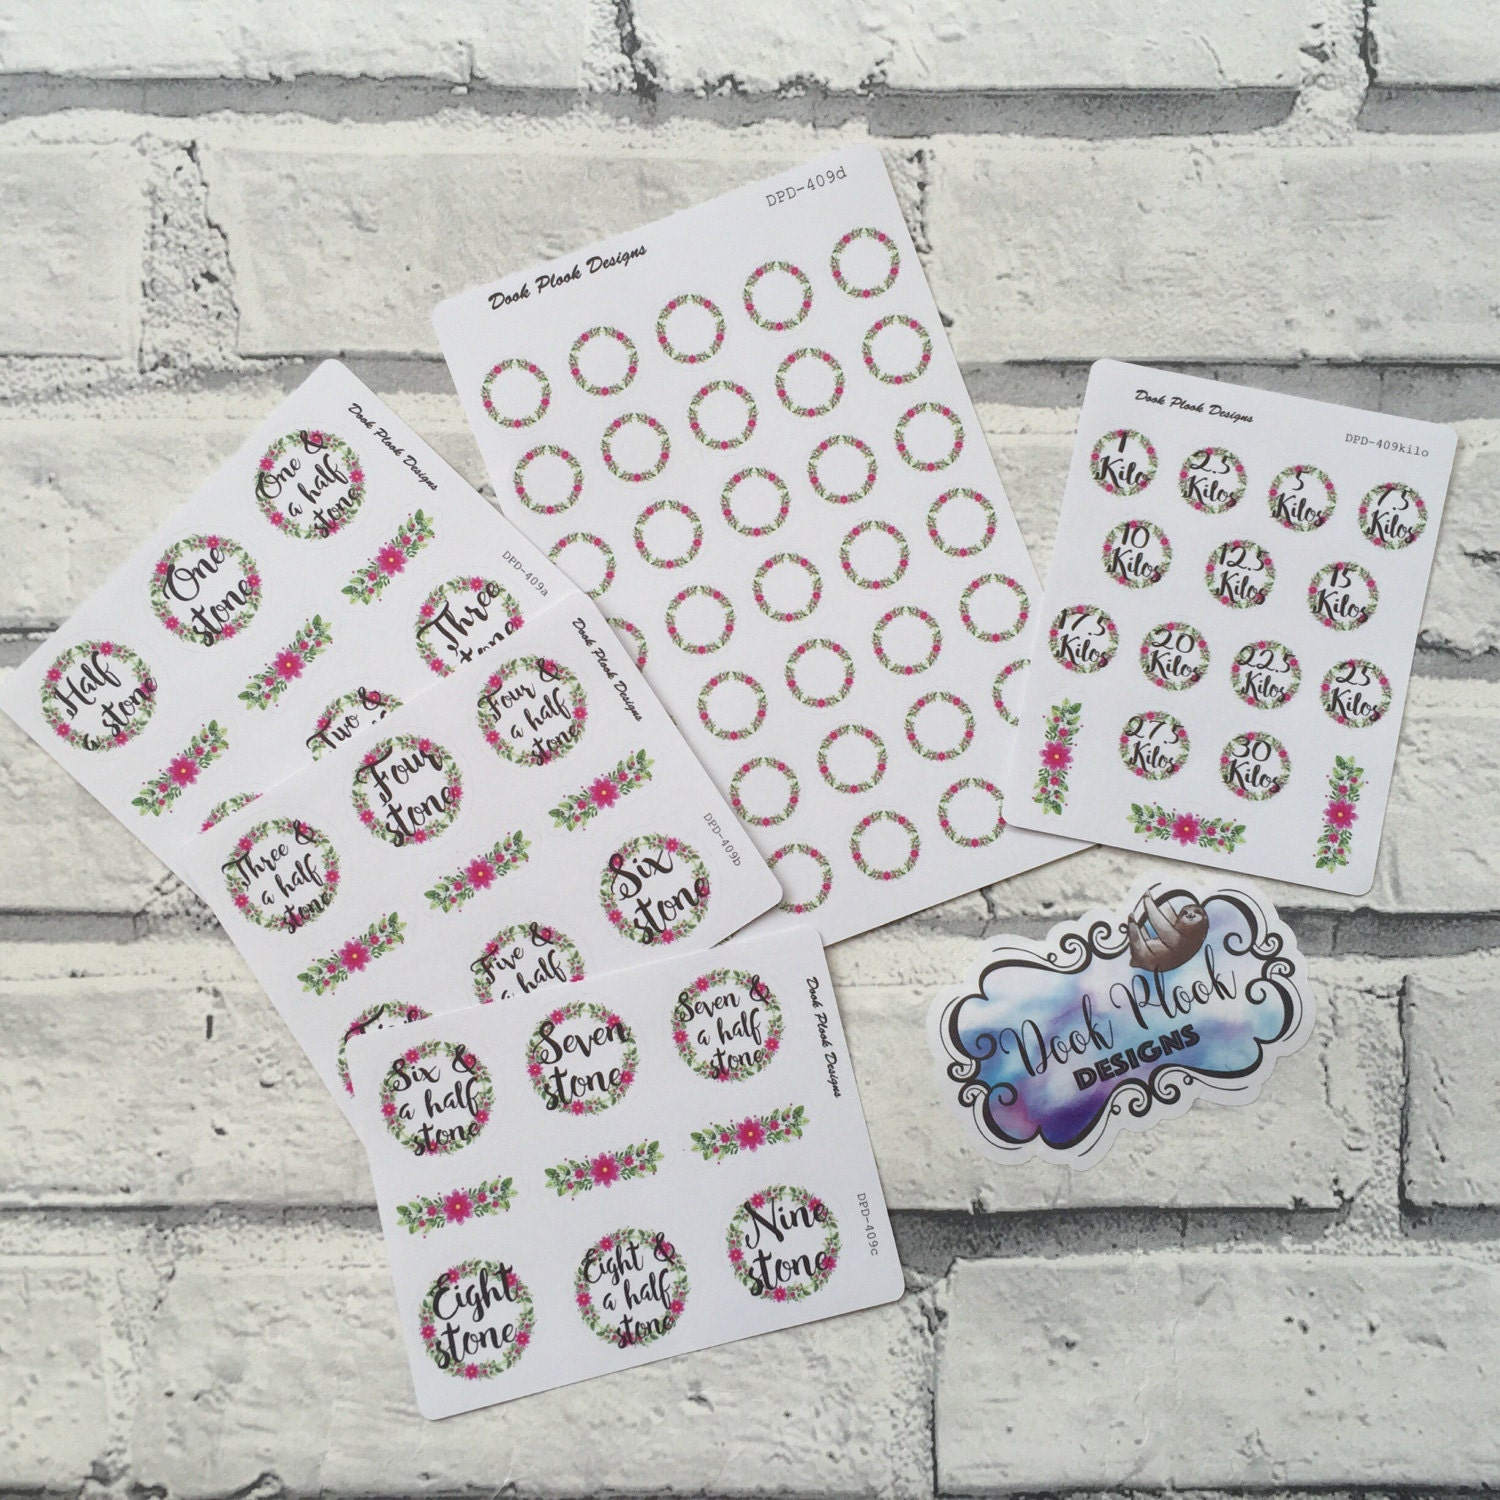 Weight loss milestone stickers for Erin Condren, Plum ...